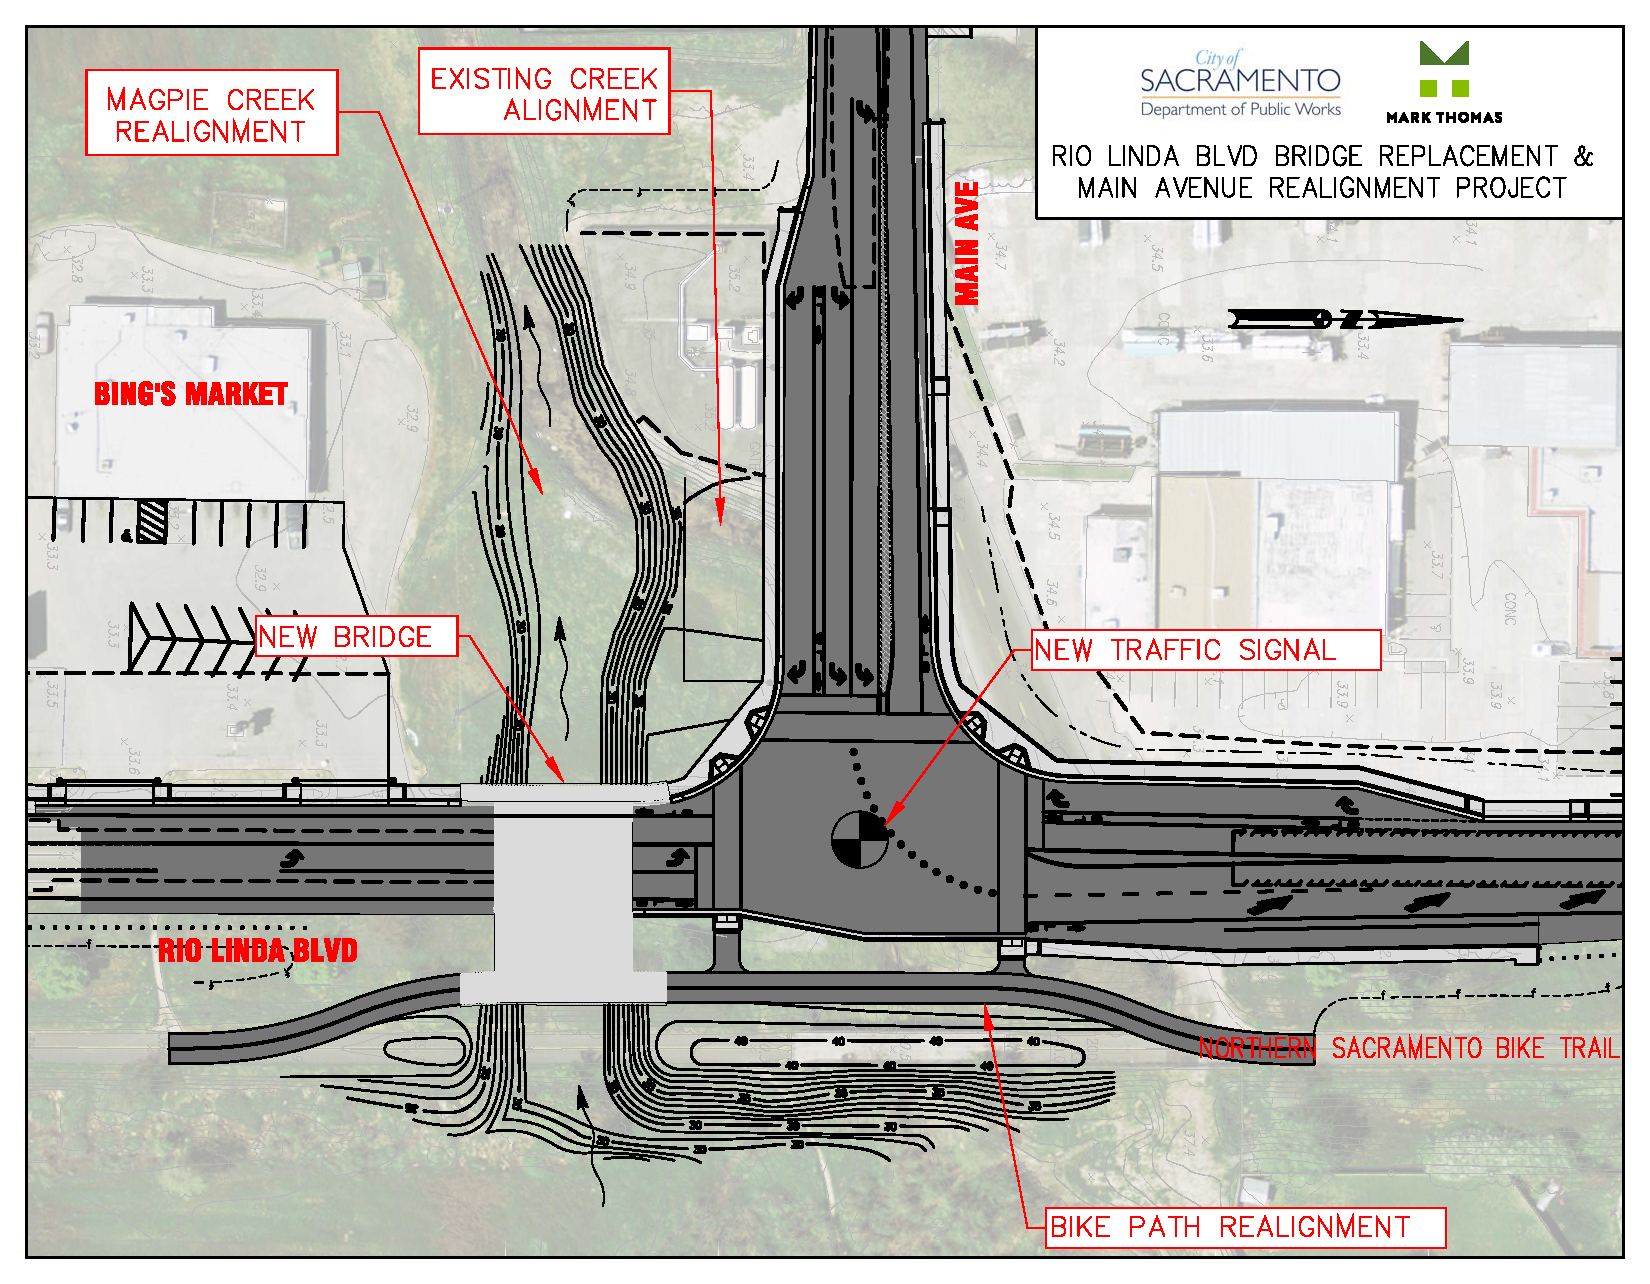 Diagram of proposed intersection and bridge improvements